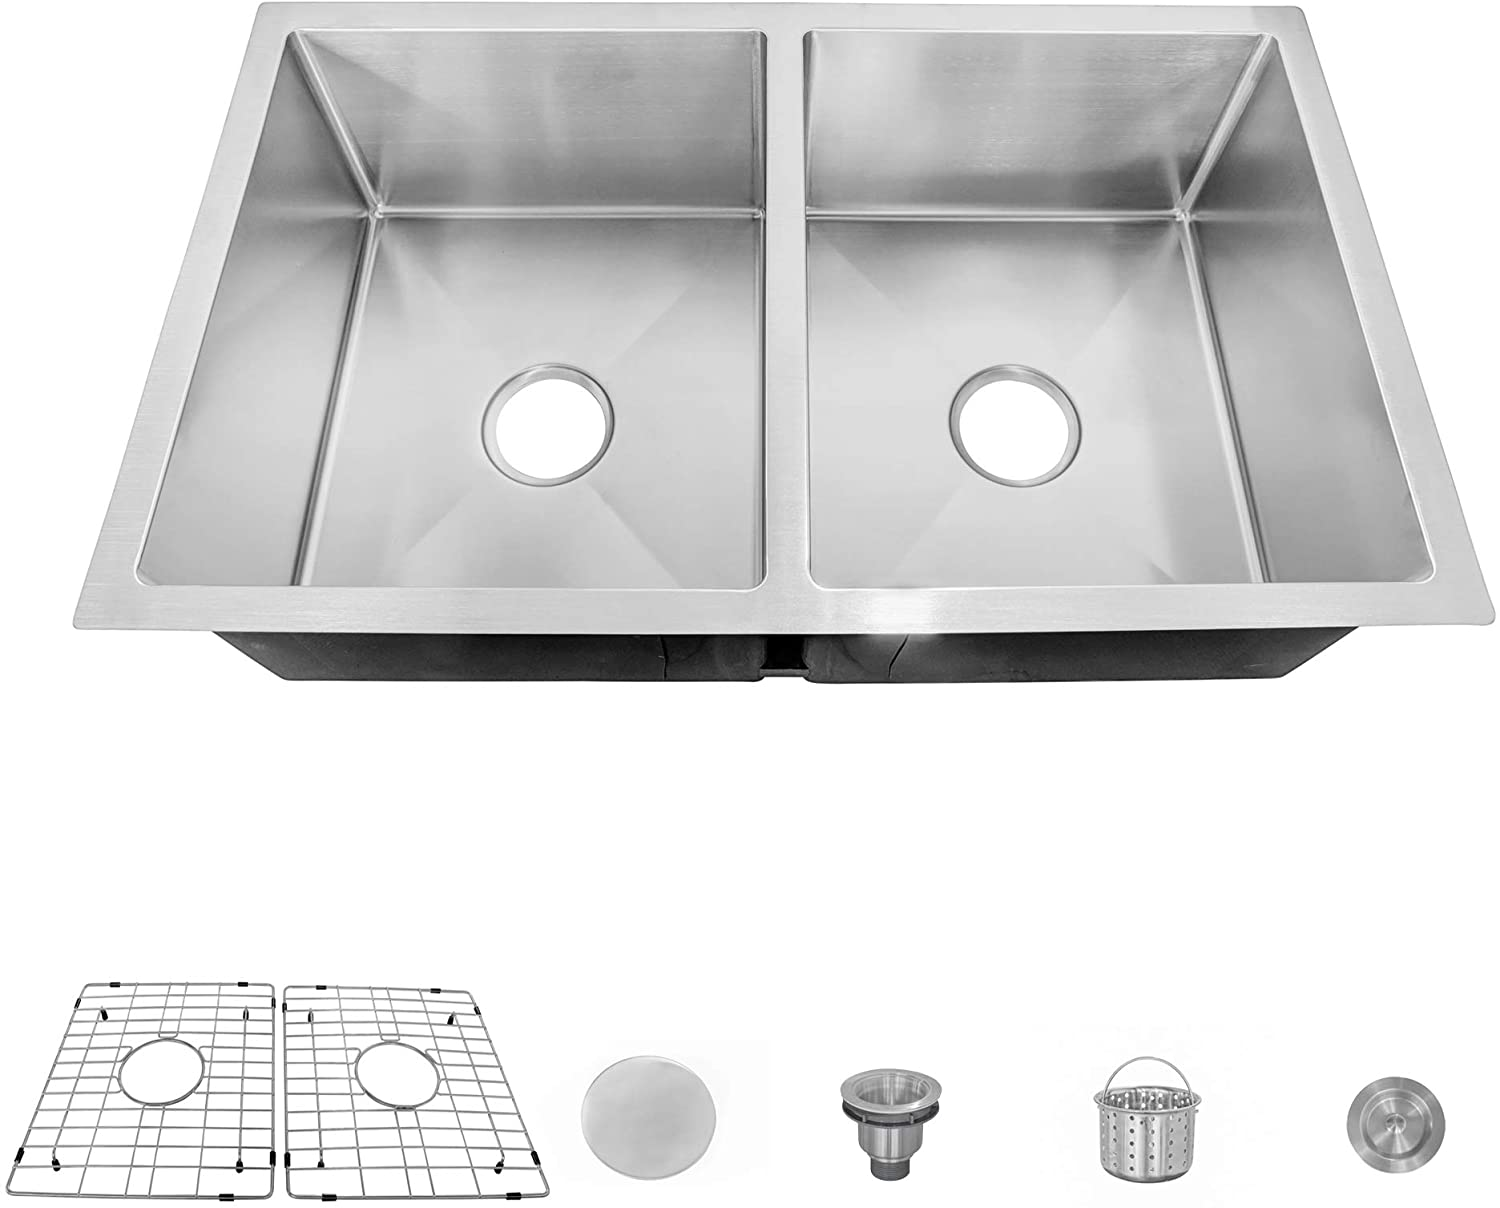 MOCCOA 16 Gauge Stainless Steel Kitchen Sink, Undermount Double Bowl (Pro 32-Inch)